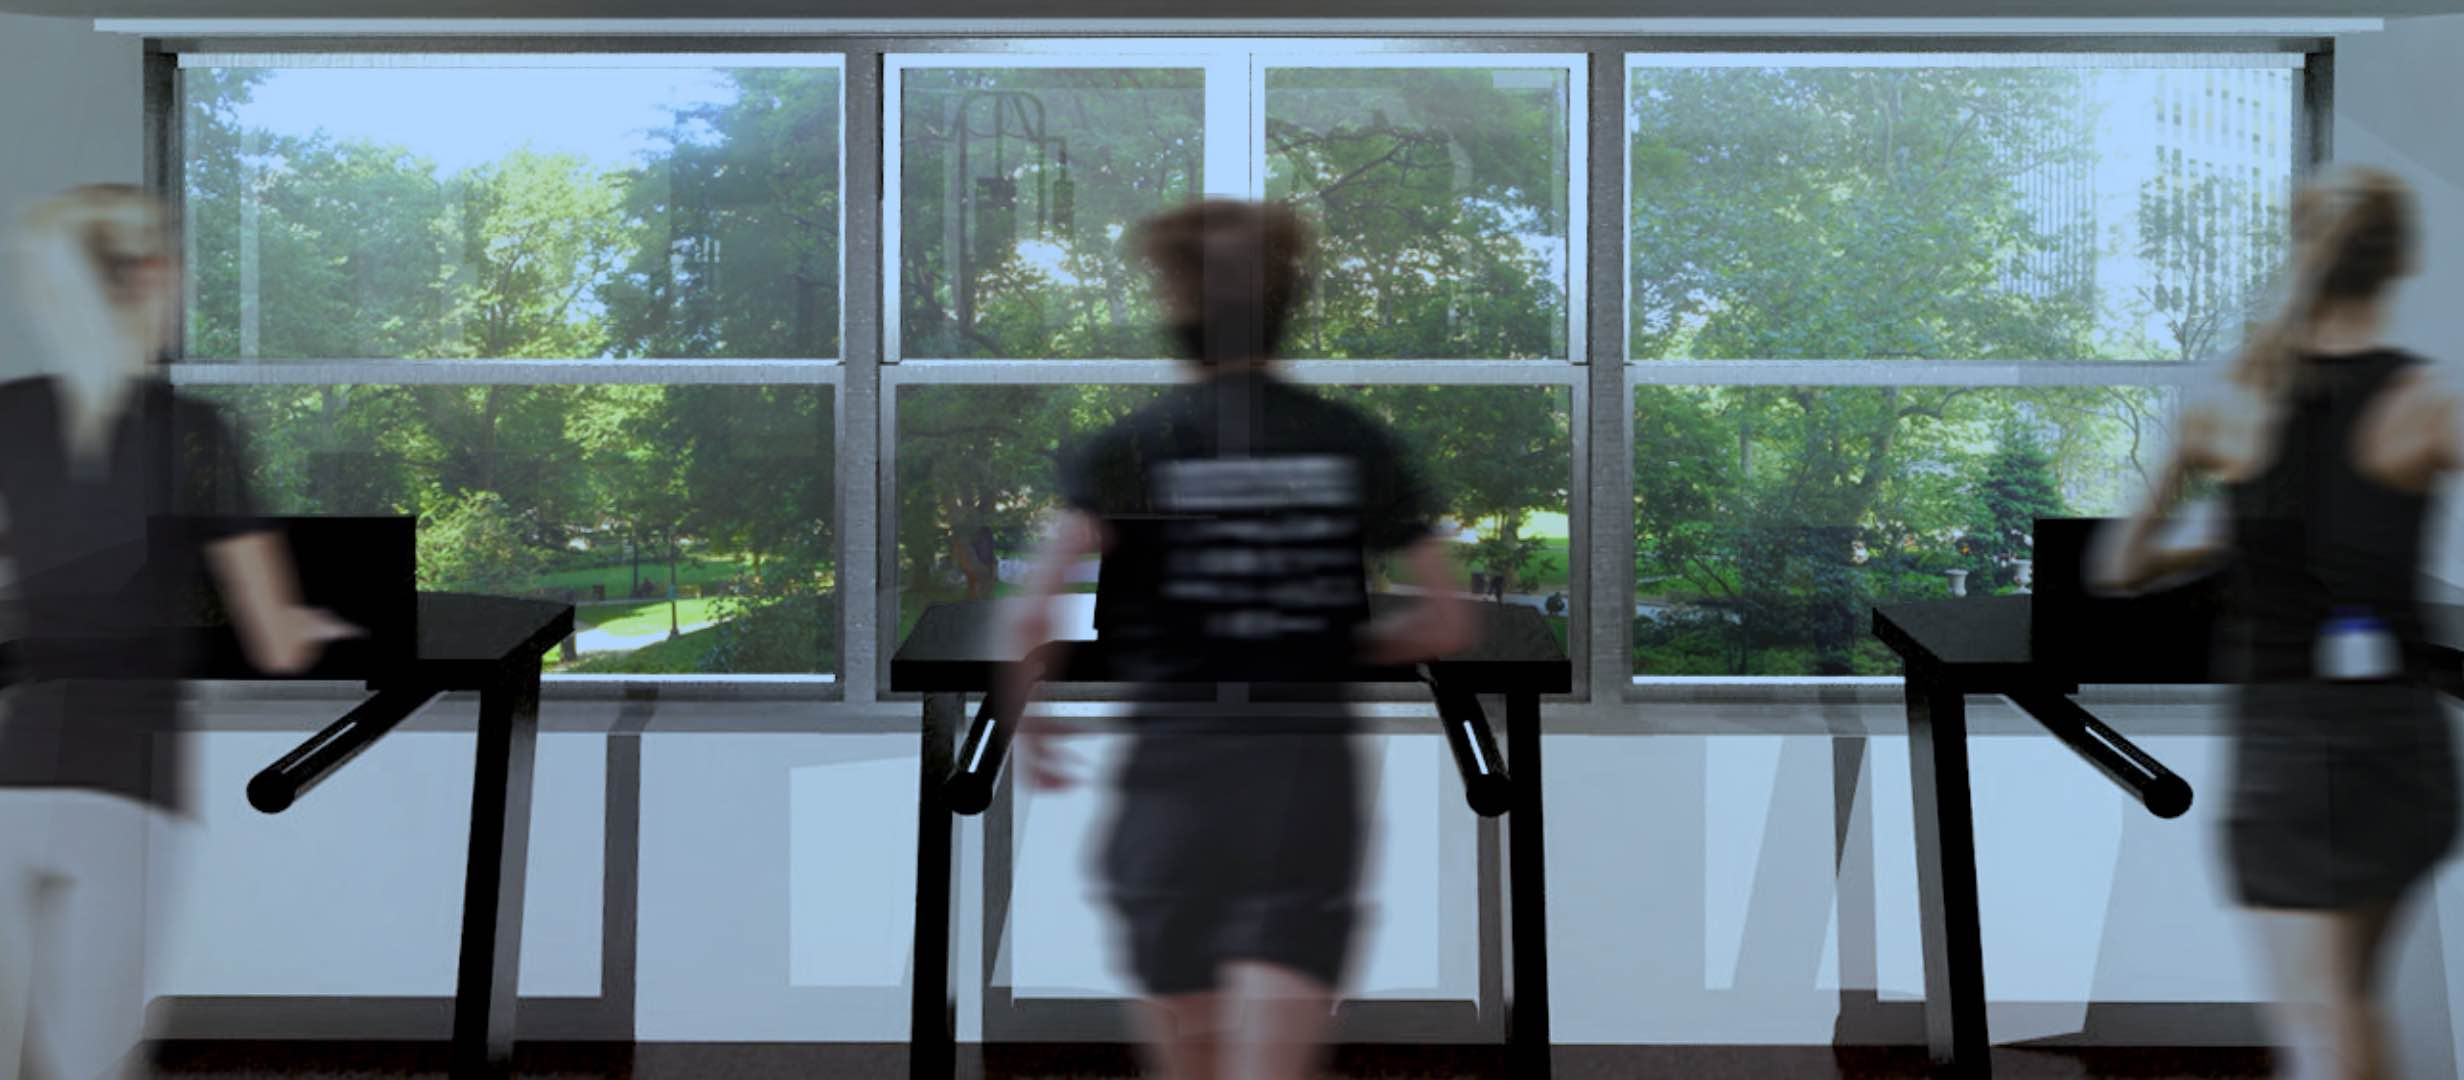 People running on treadmills in fitness center looking out glass windows